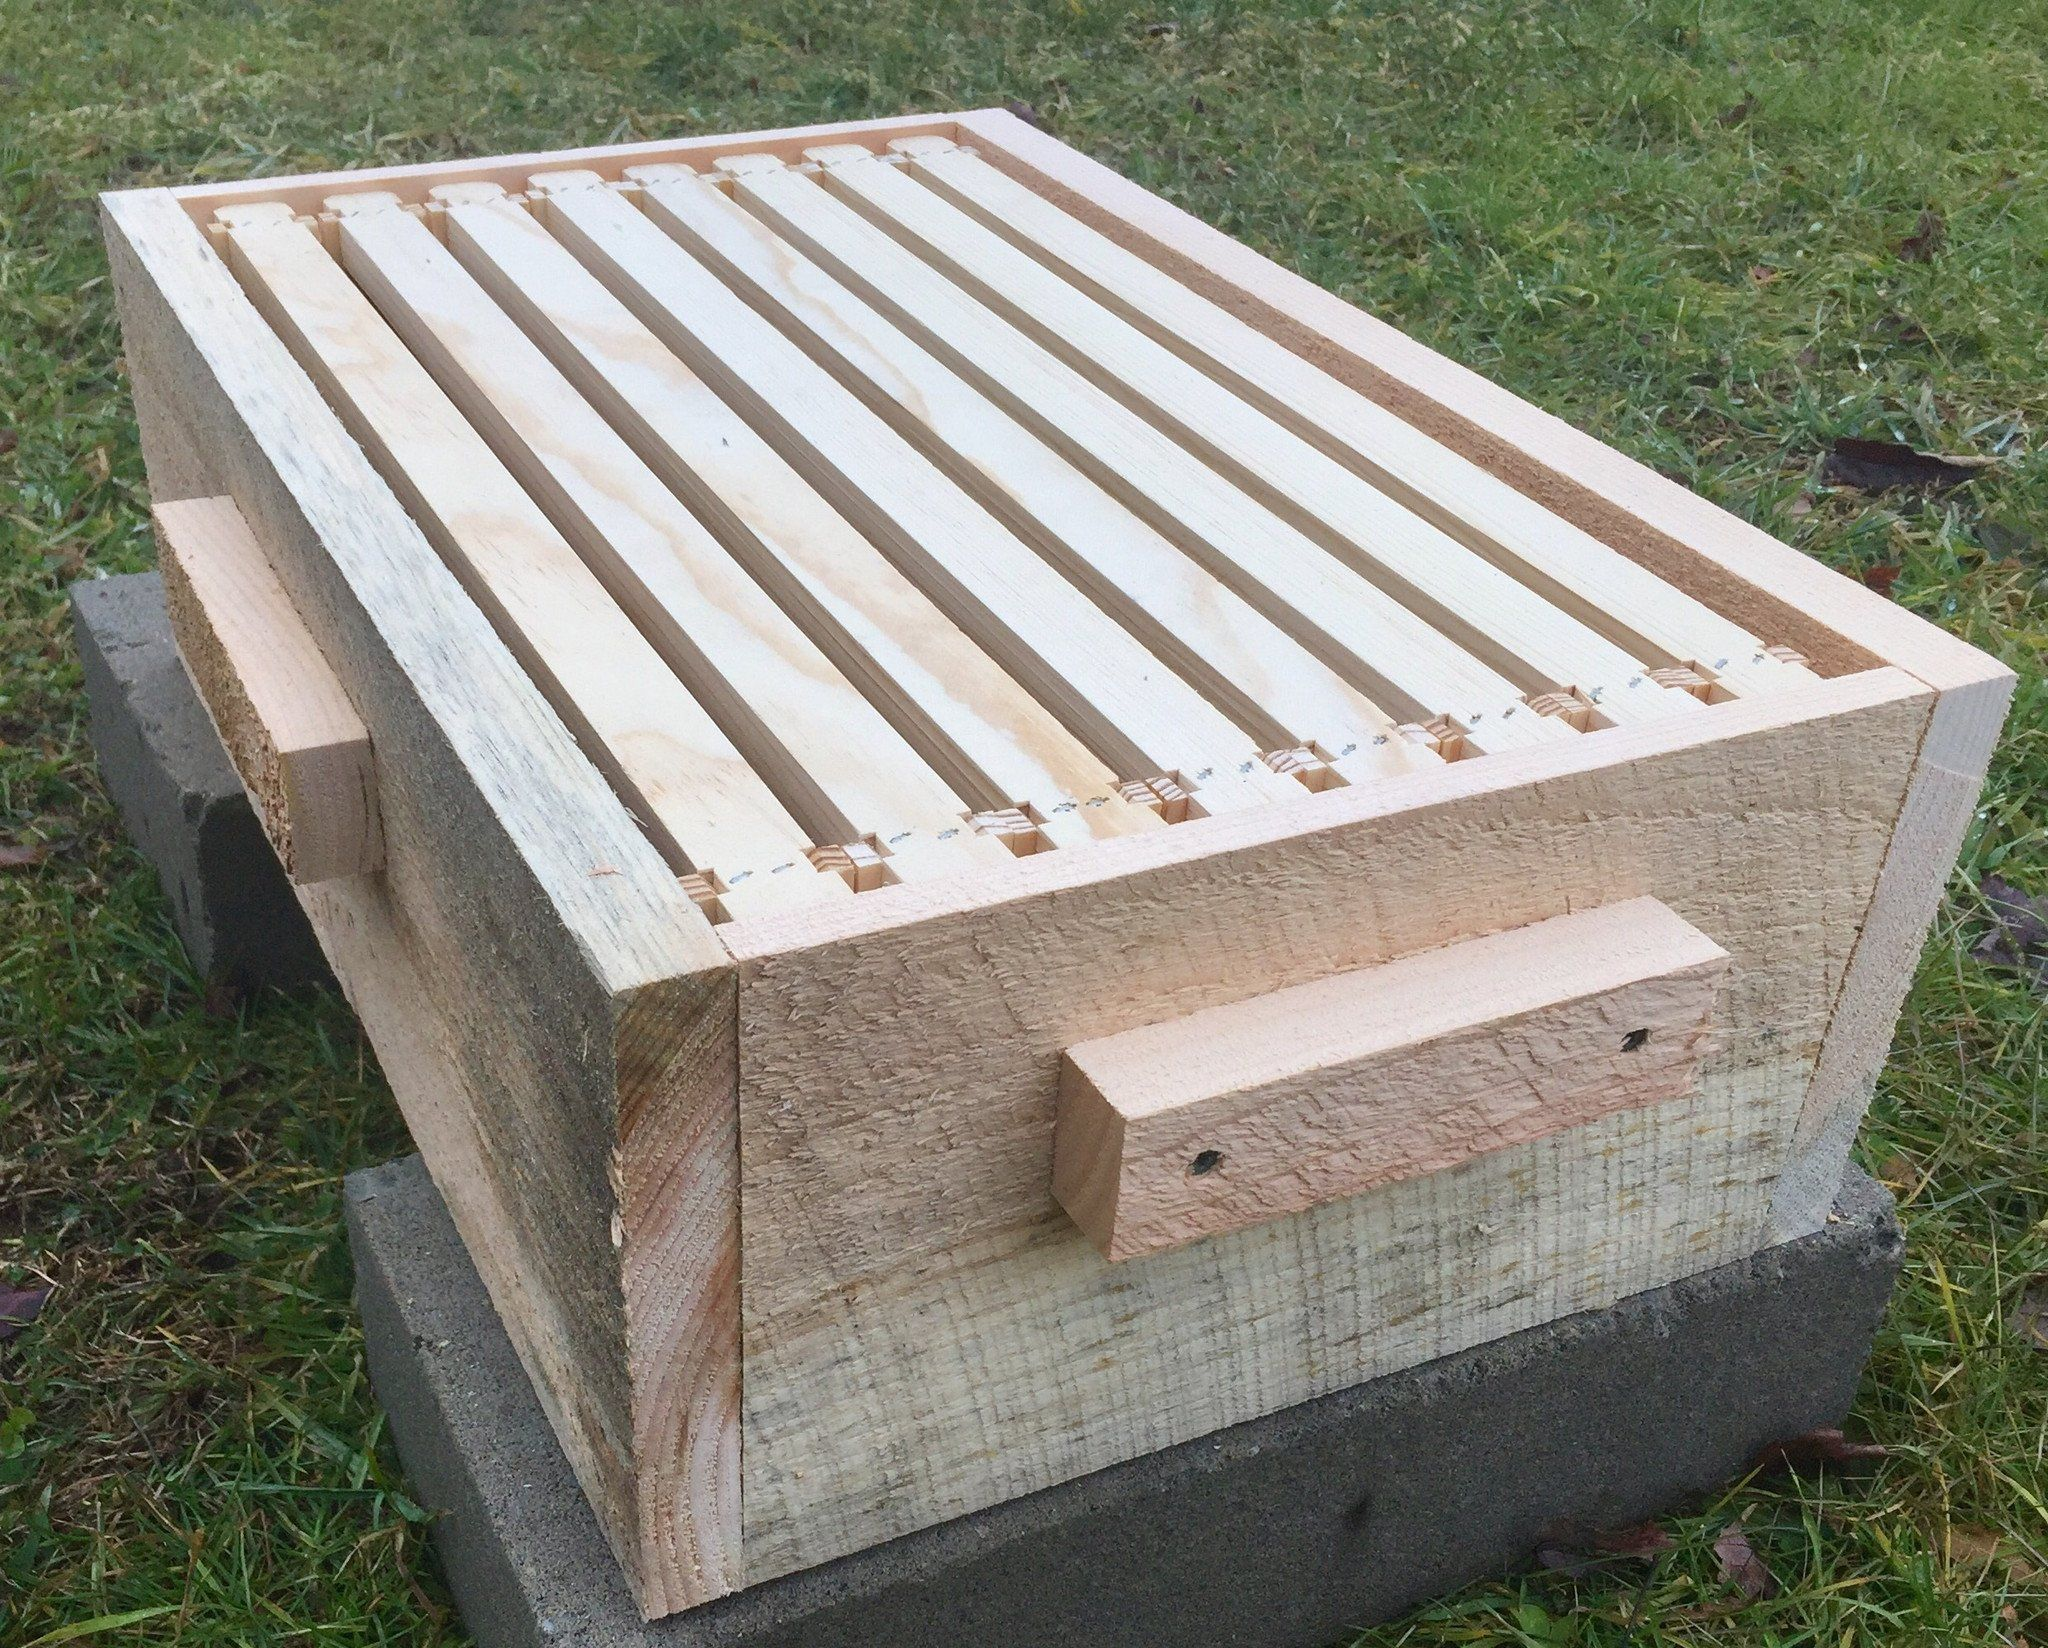 Tri Gable Lea Easier Langstroth Hive Kit 8 Frame Foundationless Langstroth Hive Bee Hives For Sale Hives